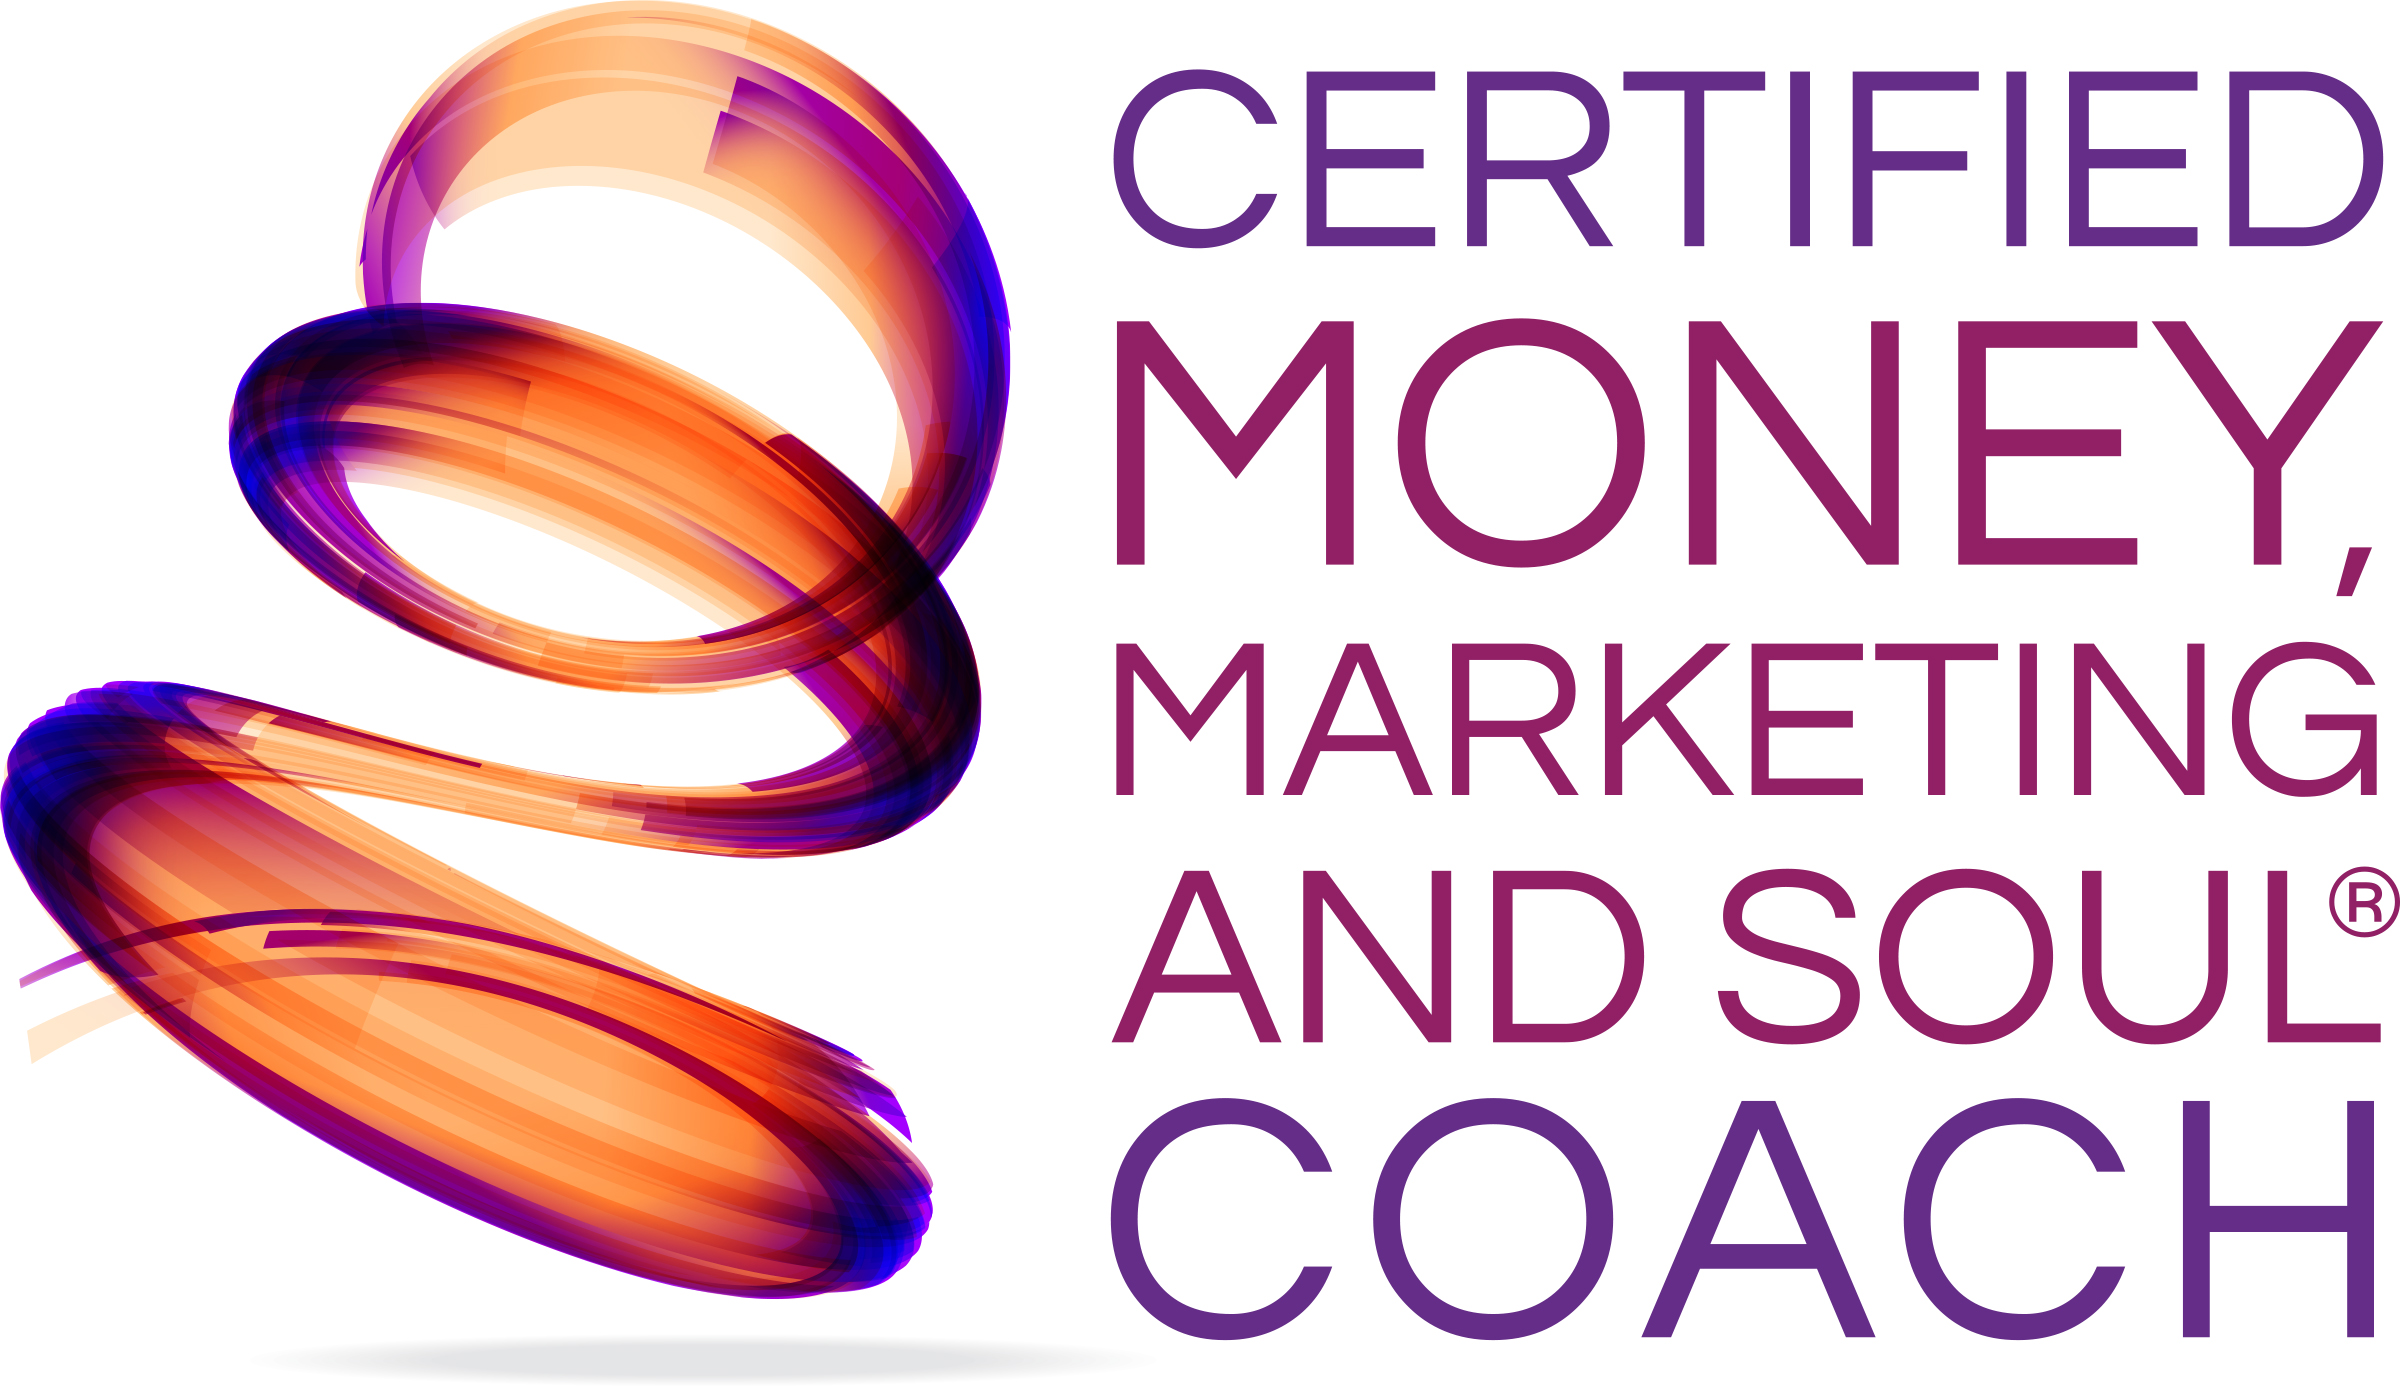 certified marketing and soul coach